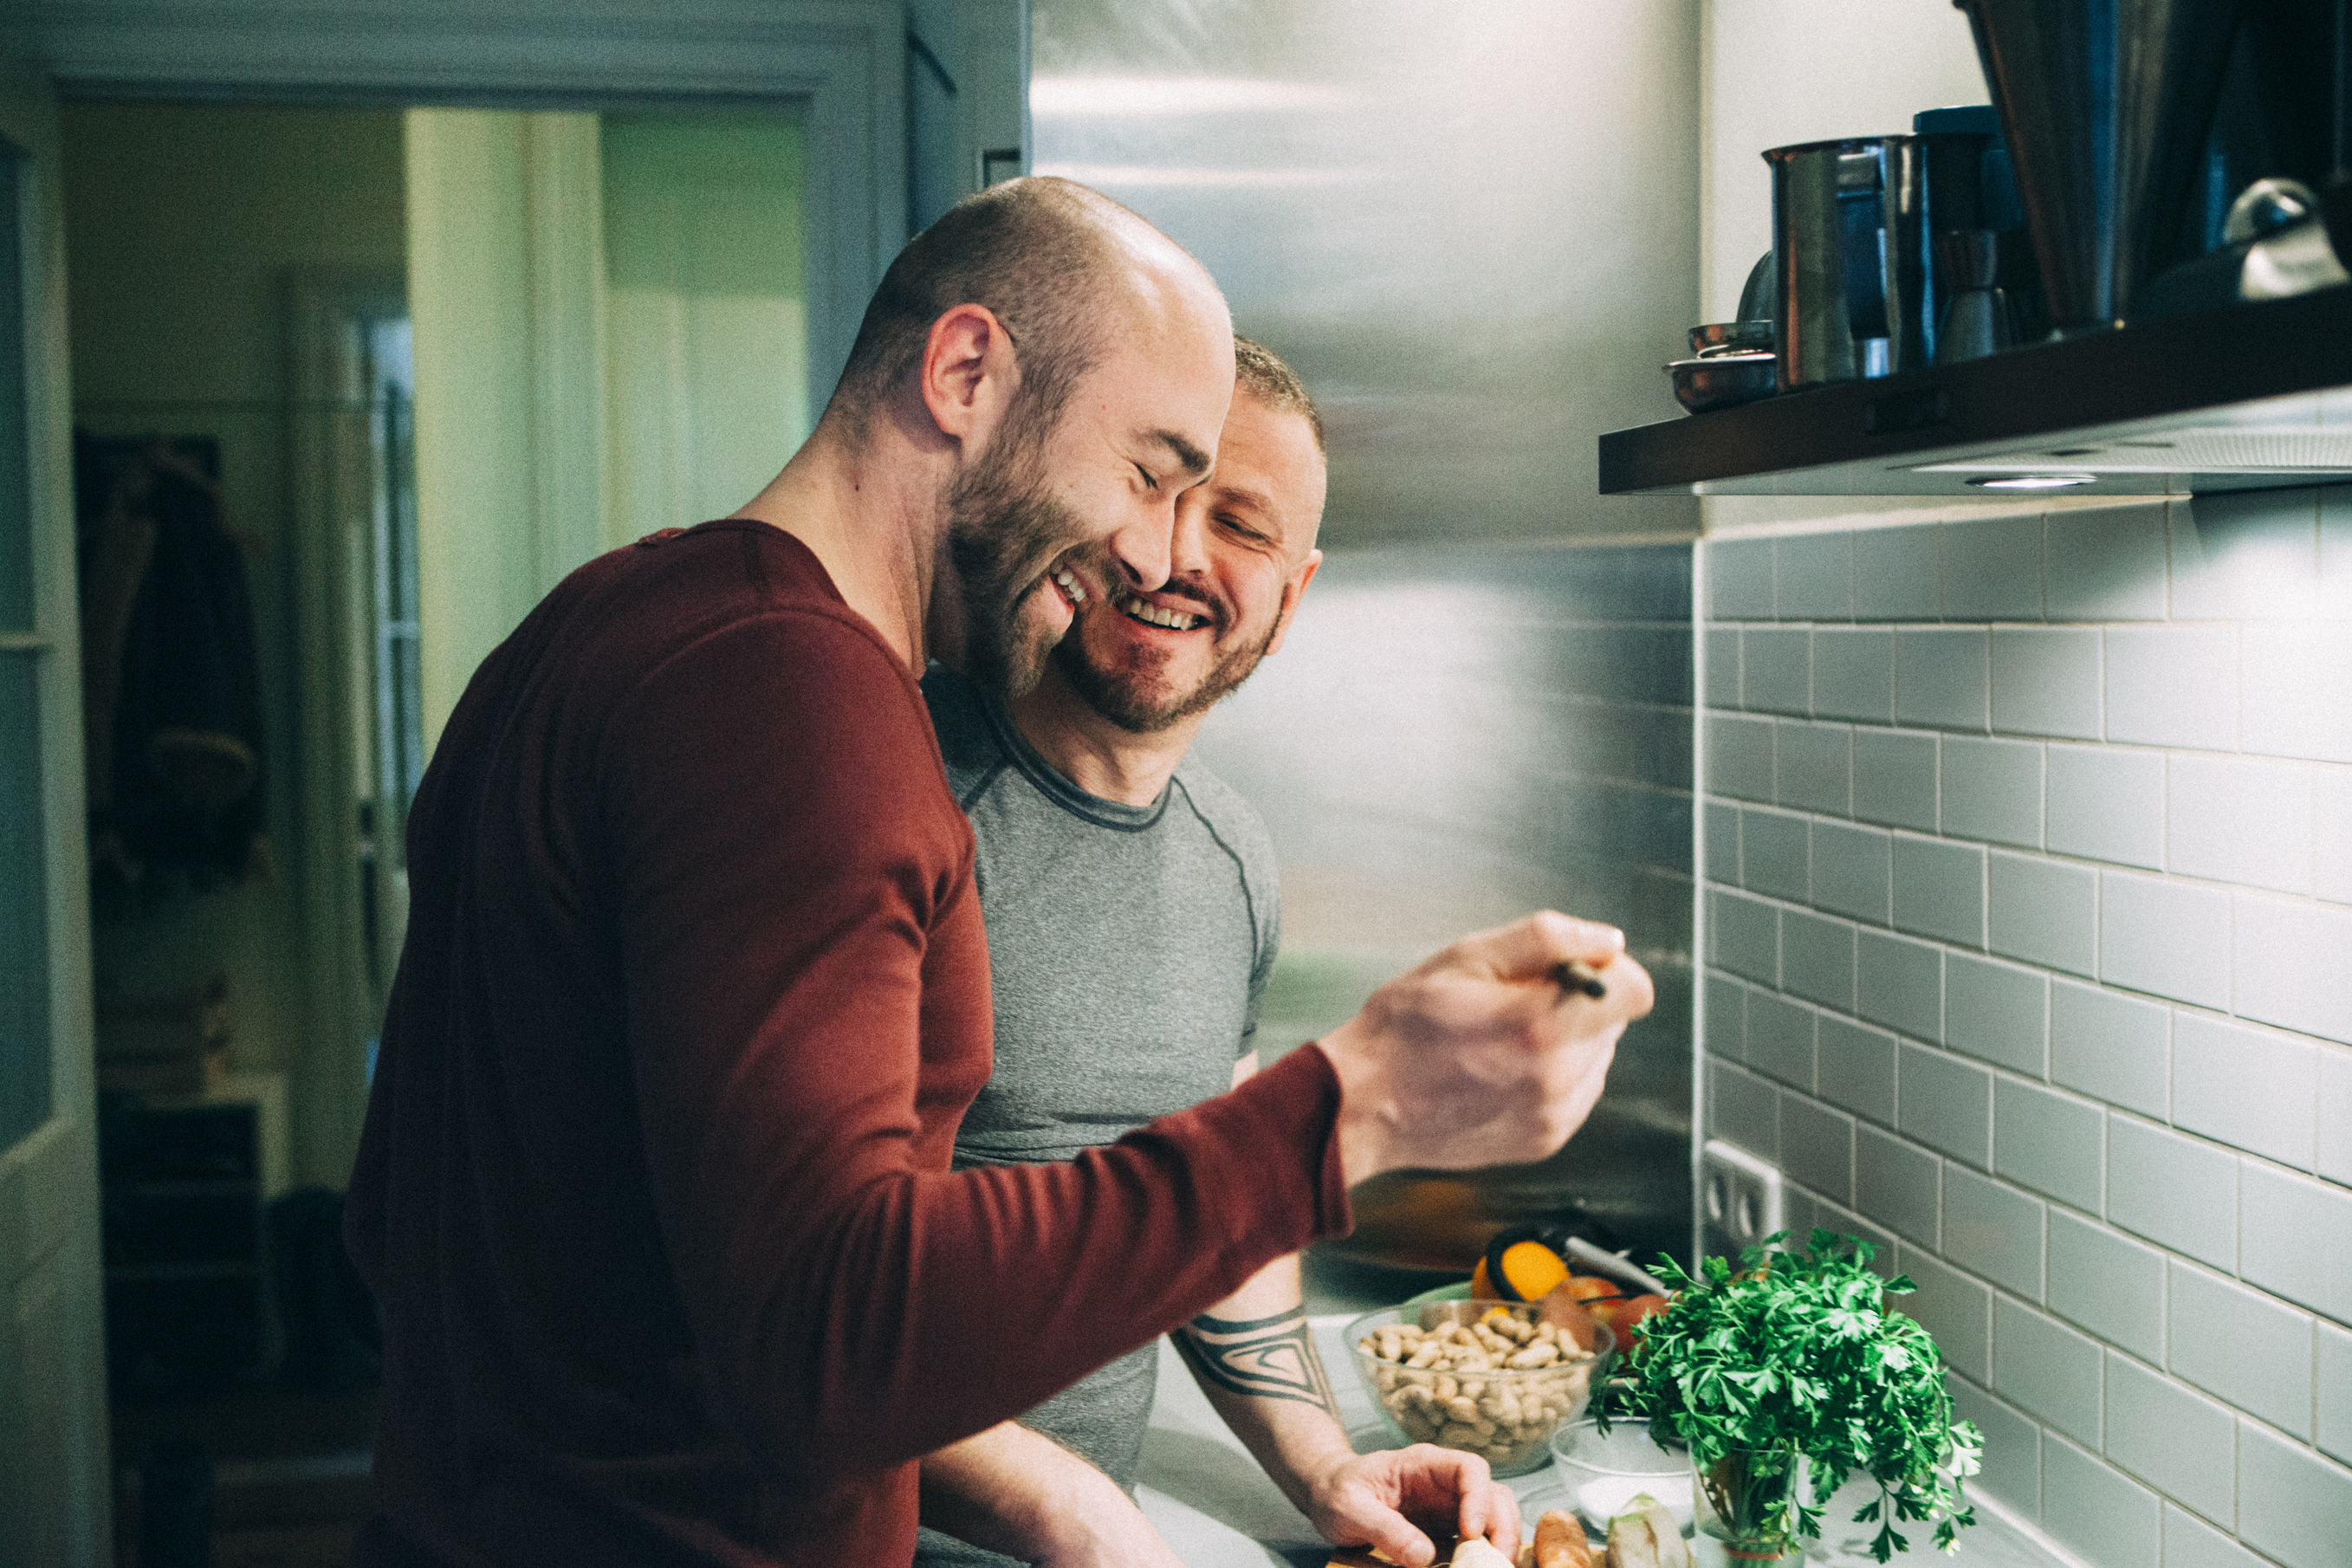 gay couple kitchen.jpg